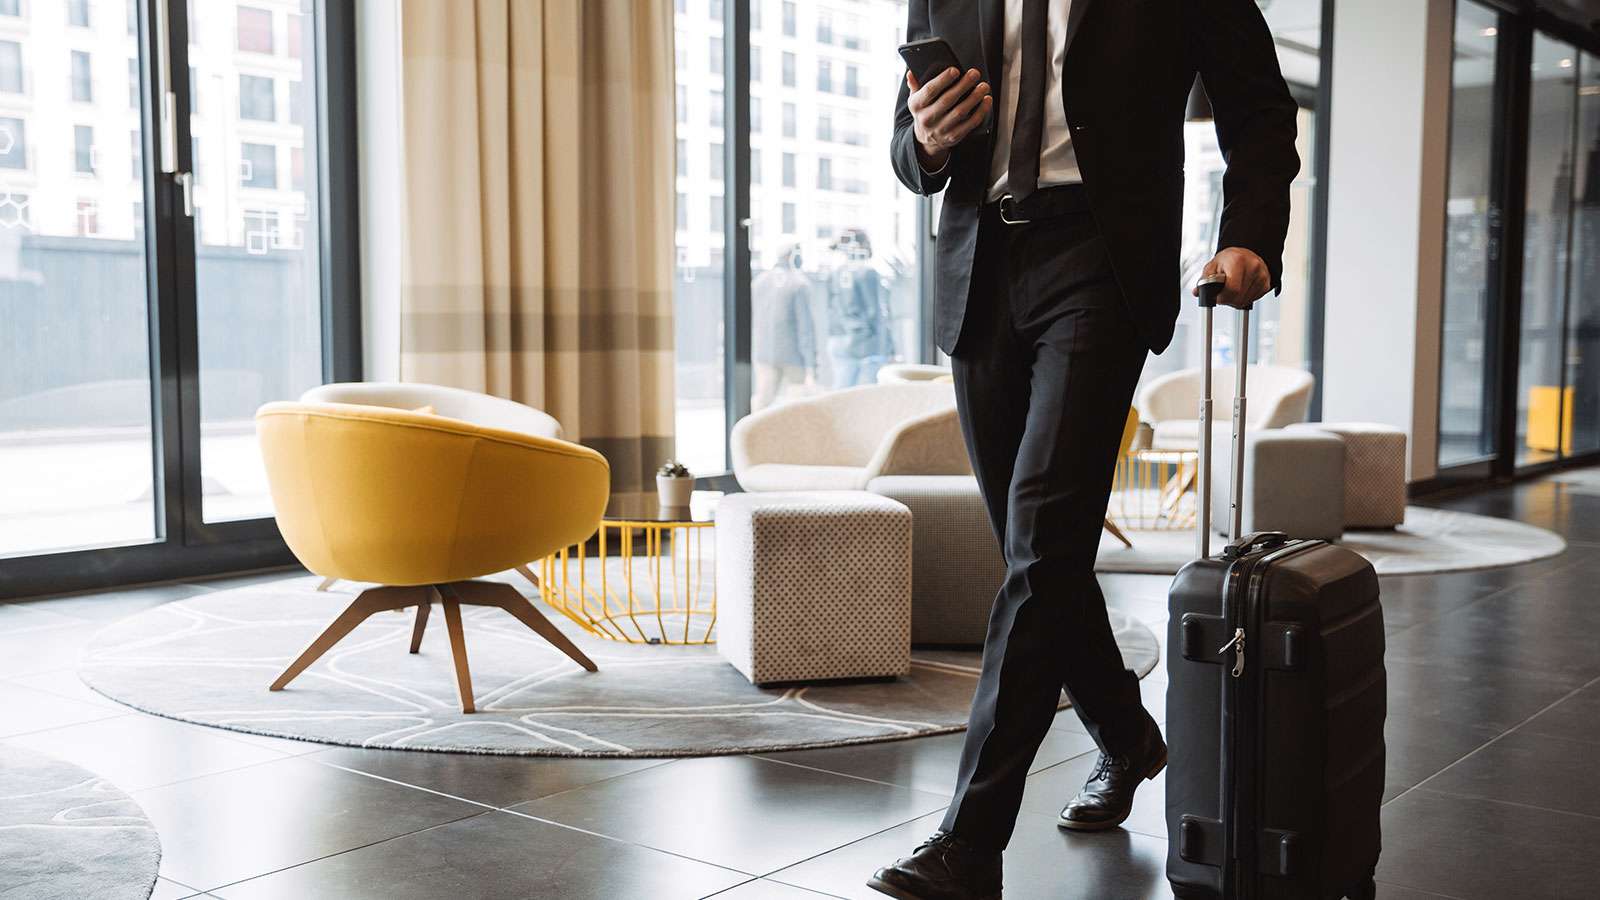 Man walks with luggage through hotel lobby